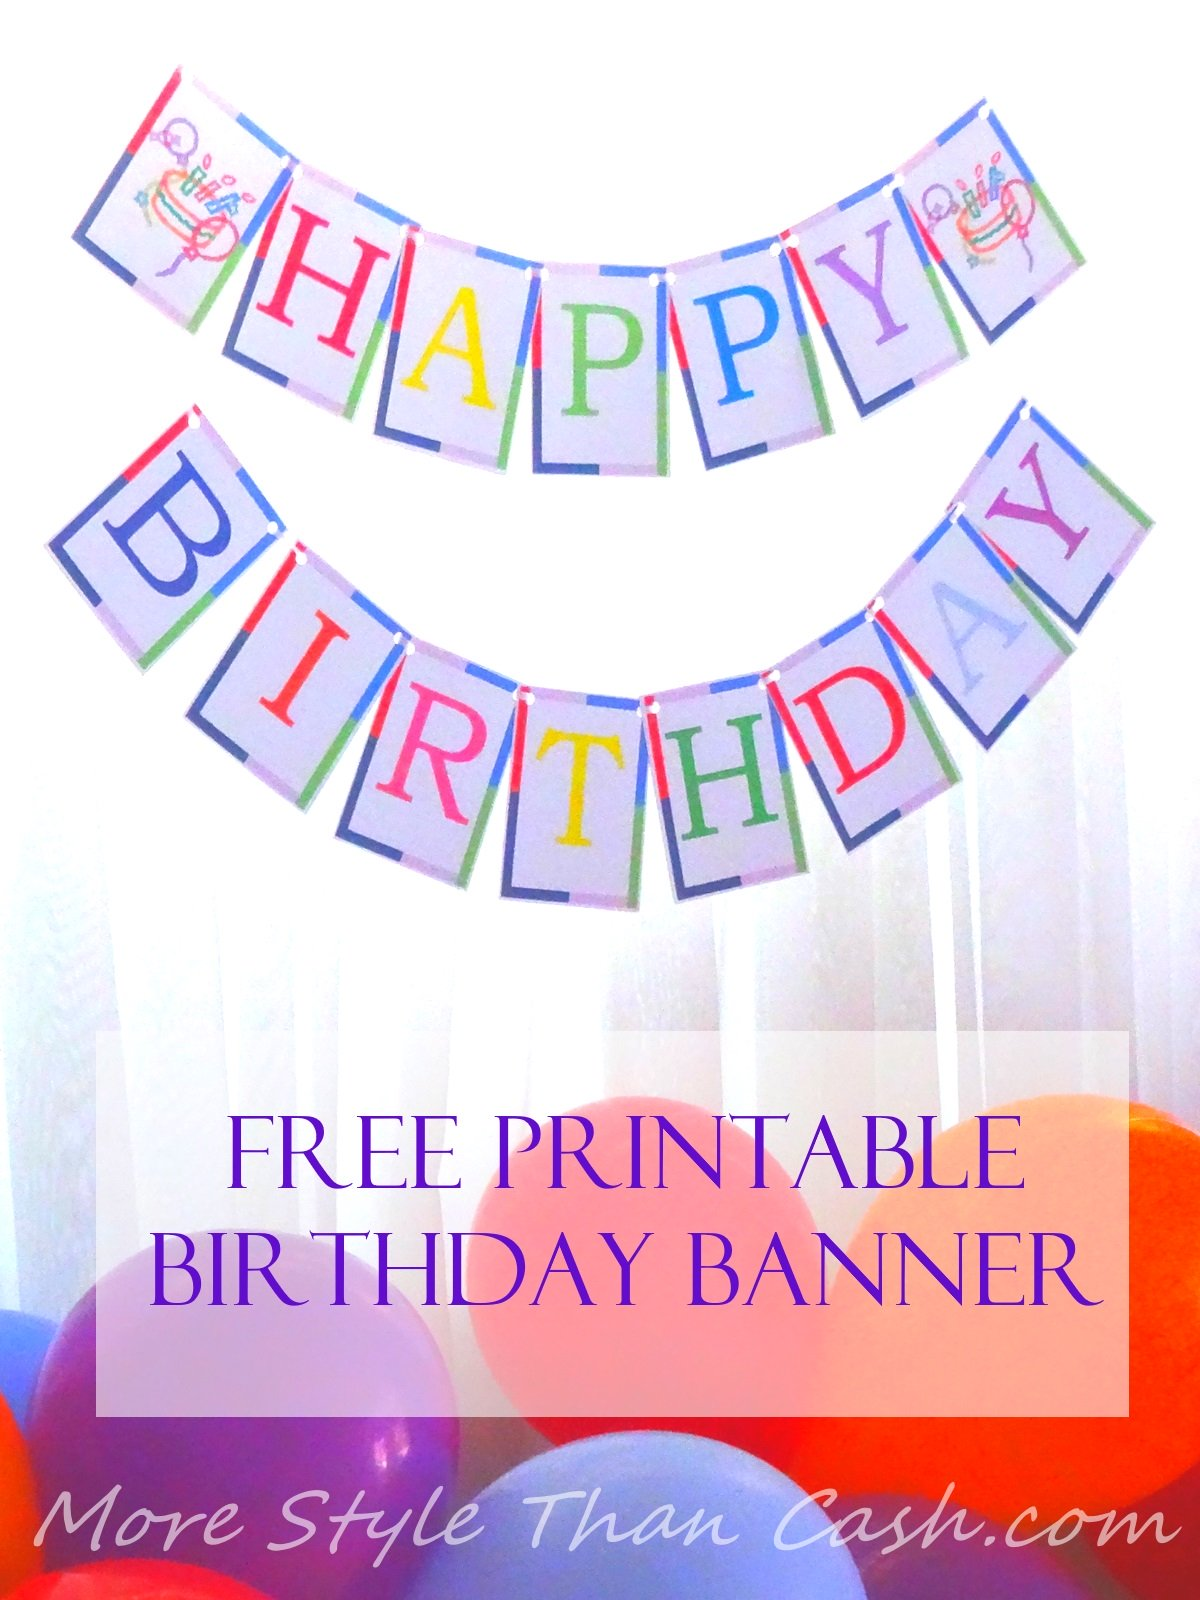 happy birthday banner printable pdf ; xDSC01536a